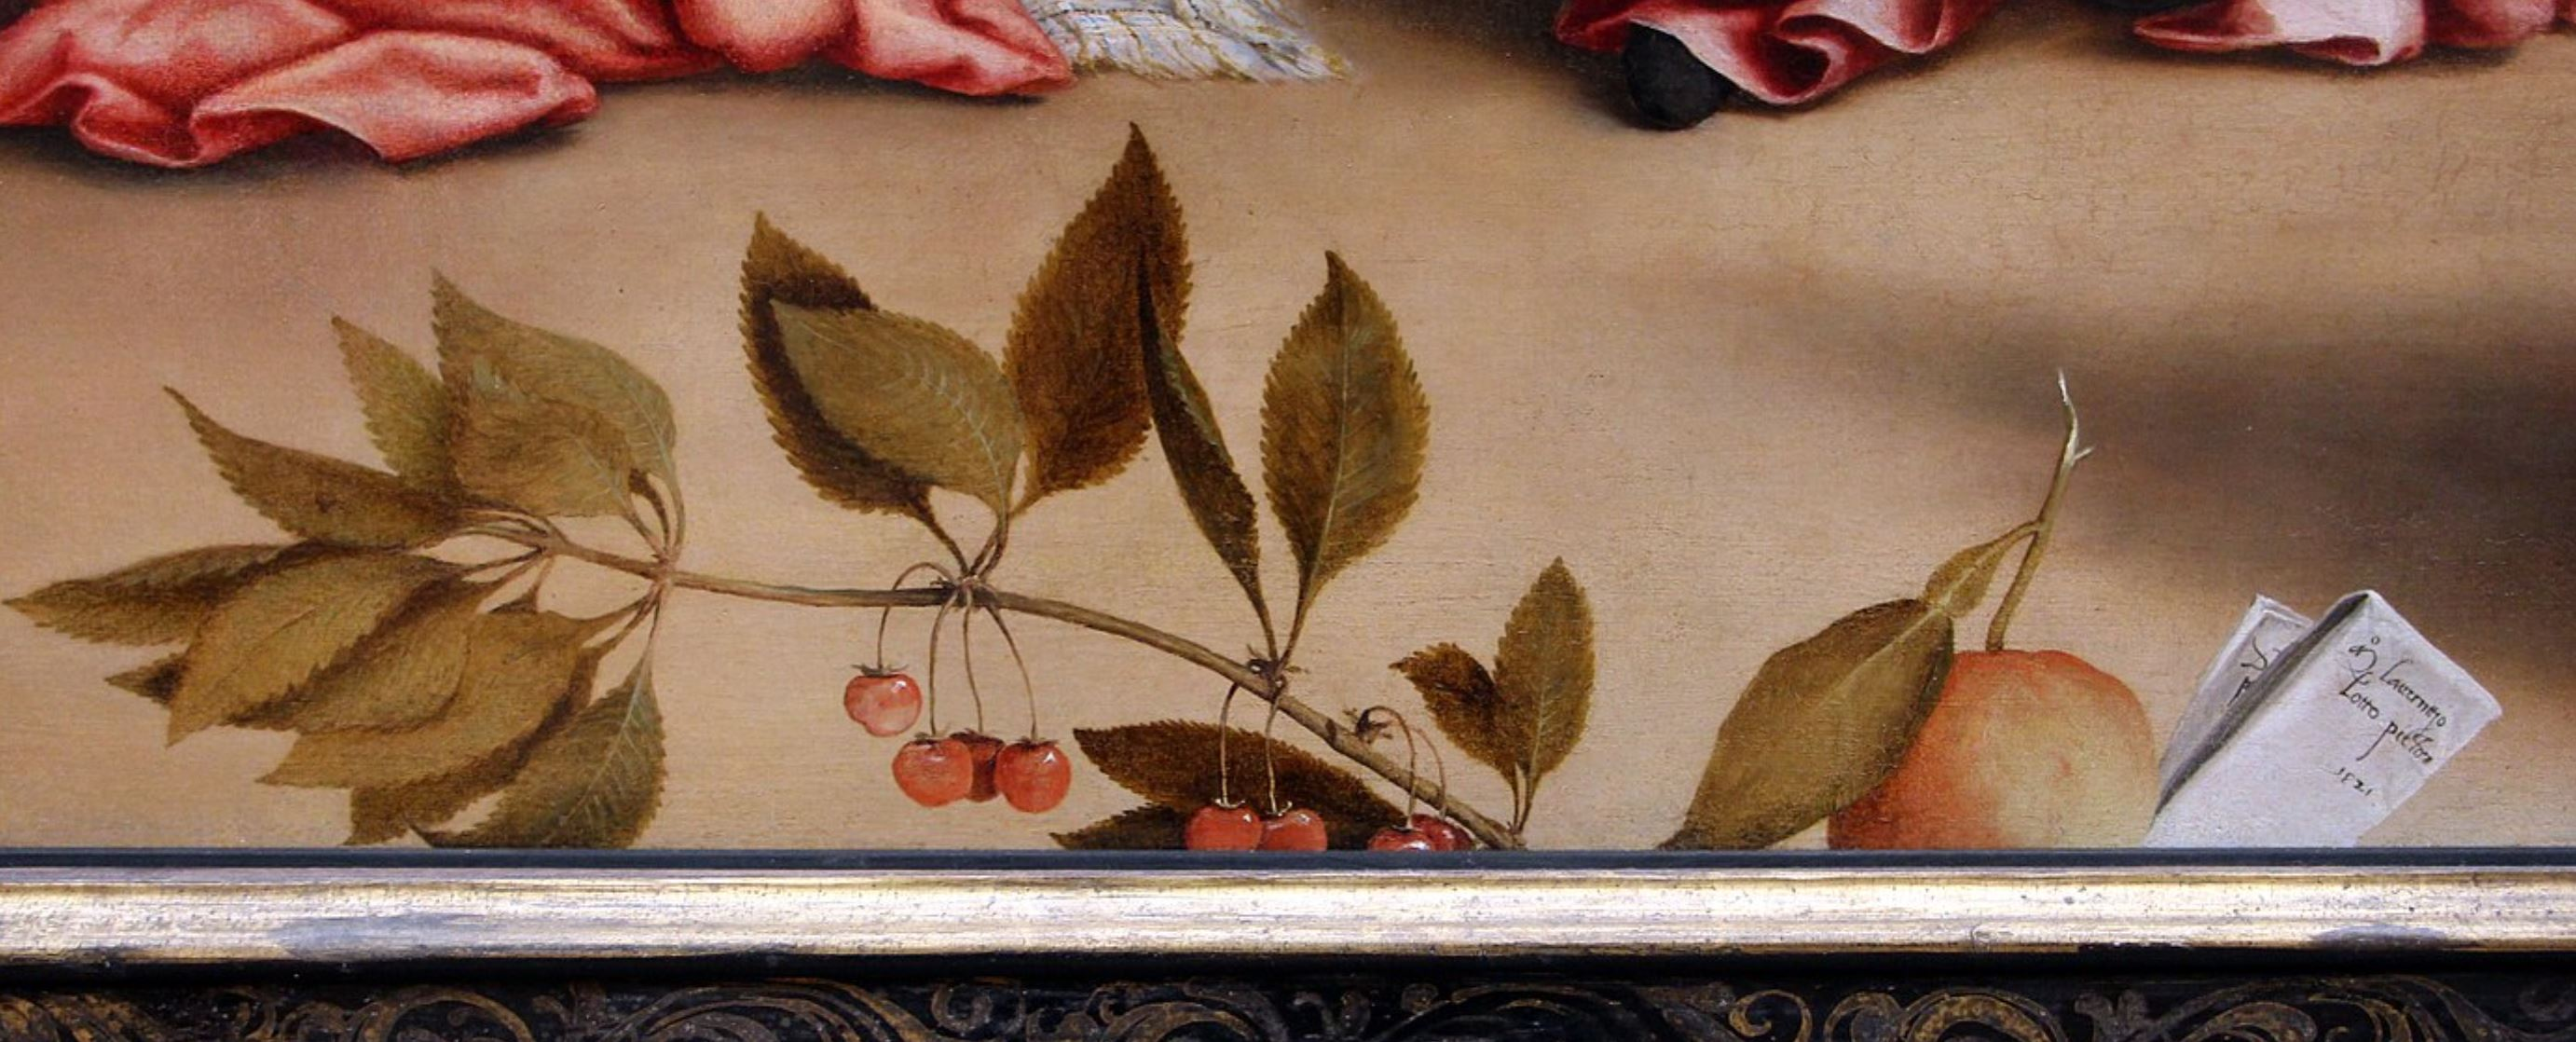 Lotto 1521 Christ taking leave o fhis mother avec Elisabetta Rota Gemaldegalerie, Berlin detail fruits